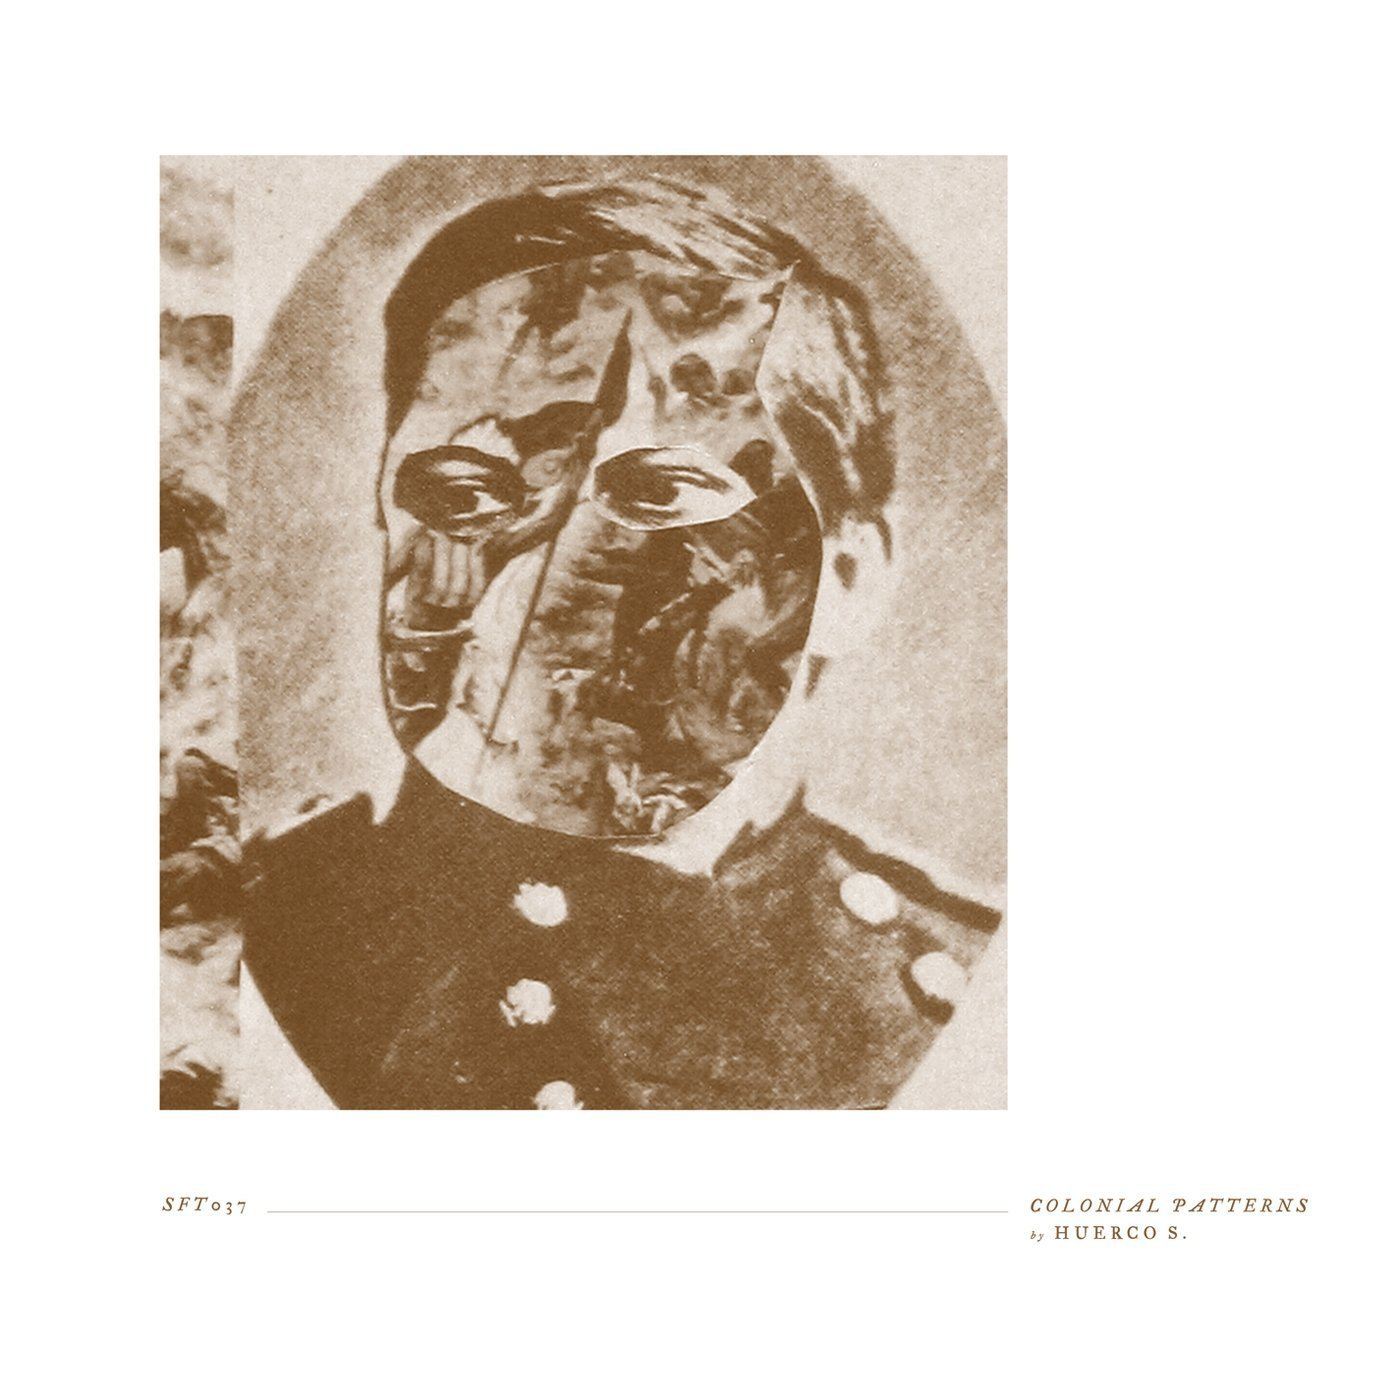 CD : Huerco S. - Colonial Patterns (CD)